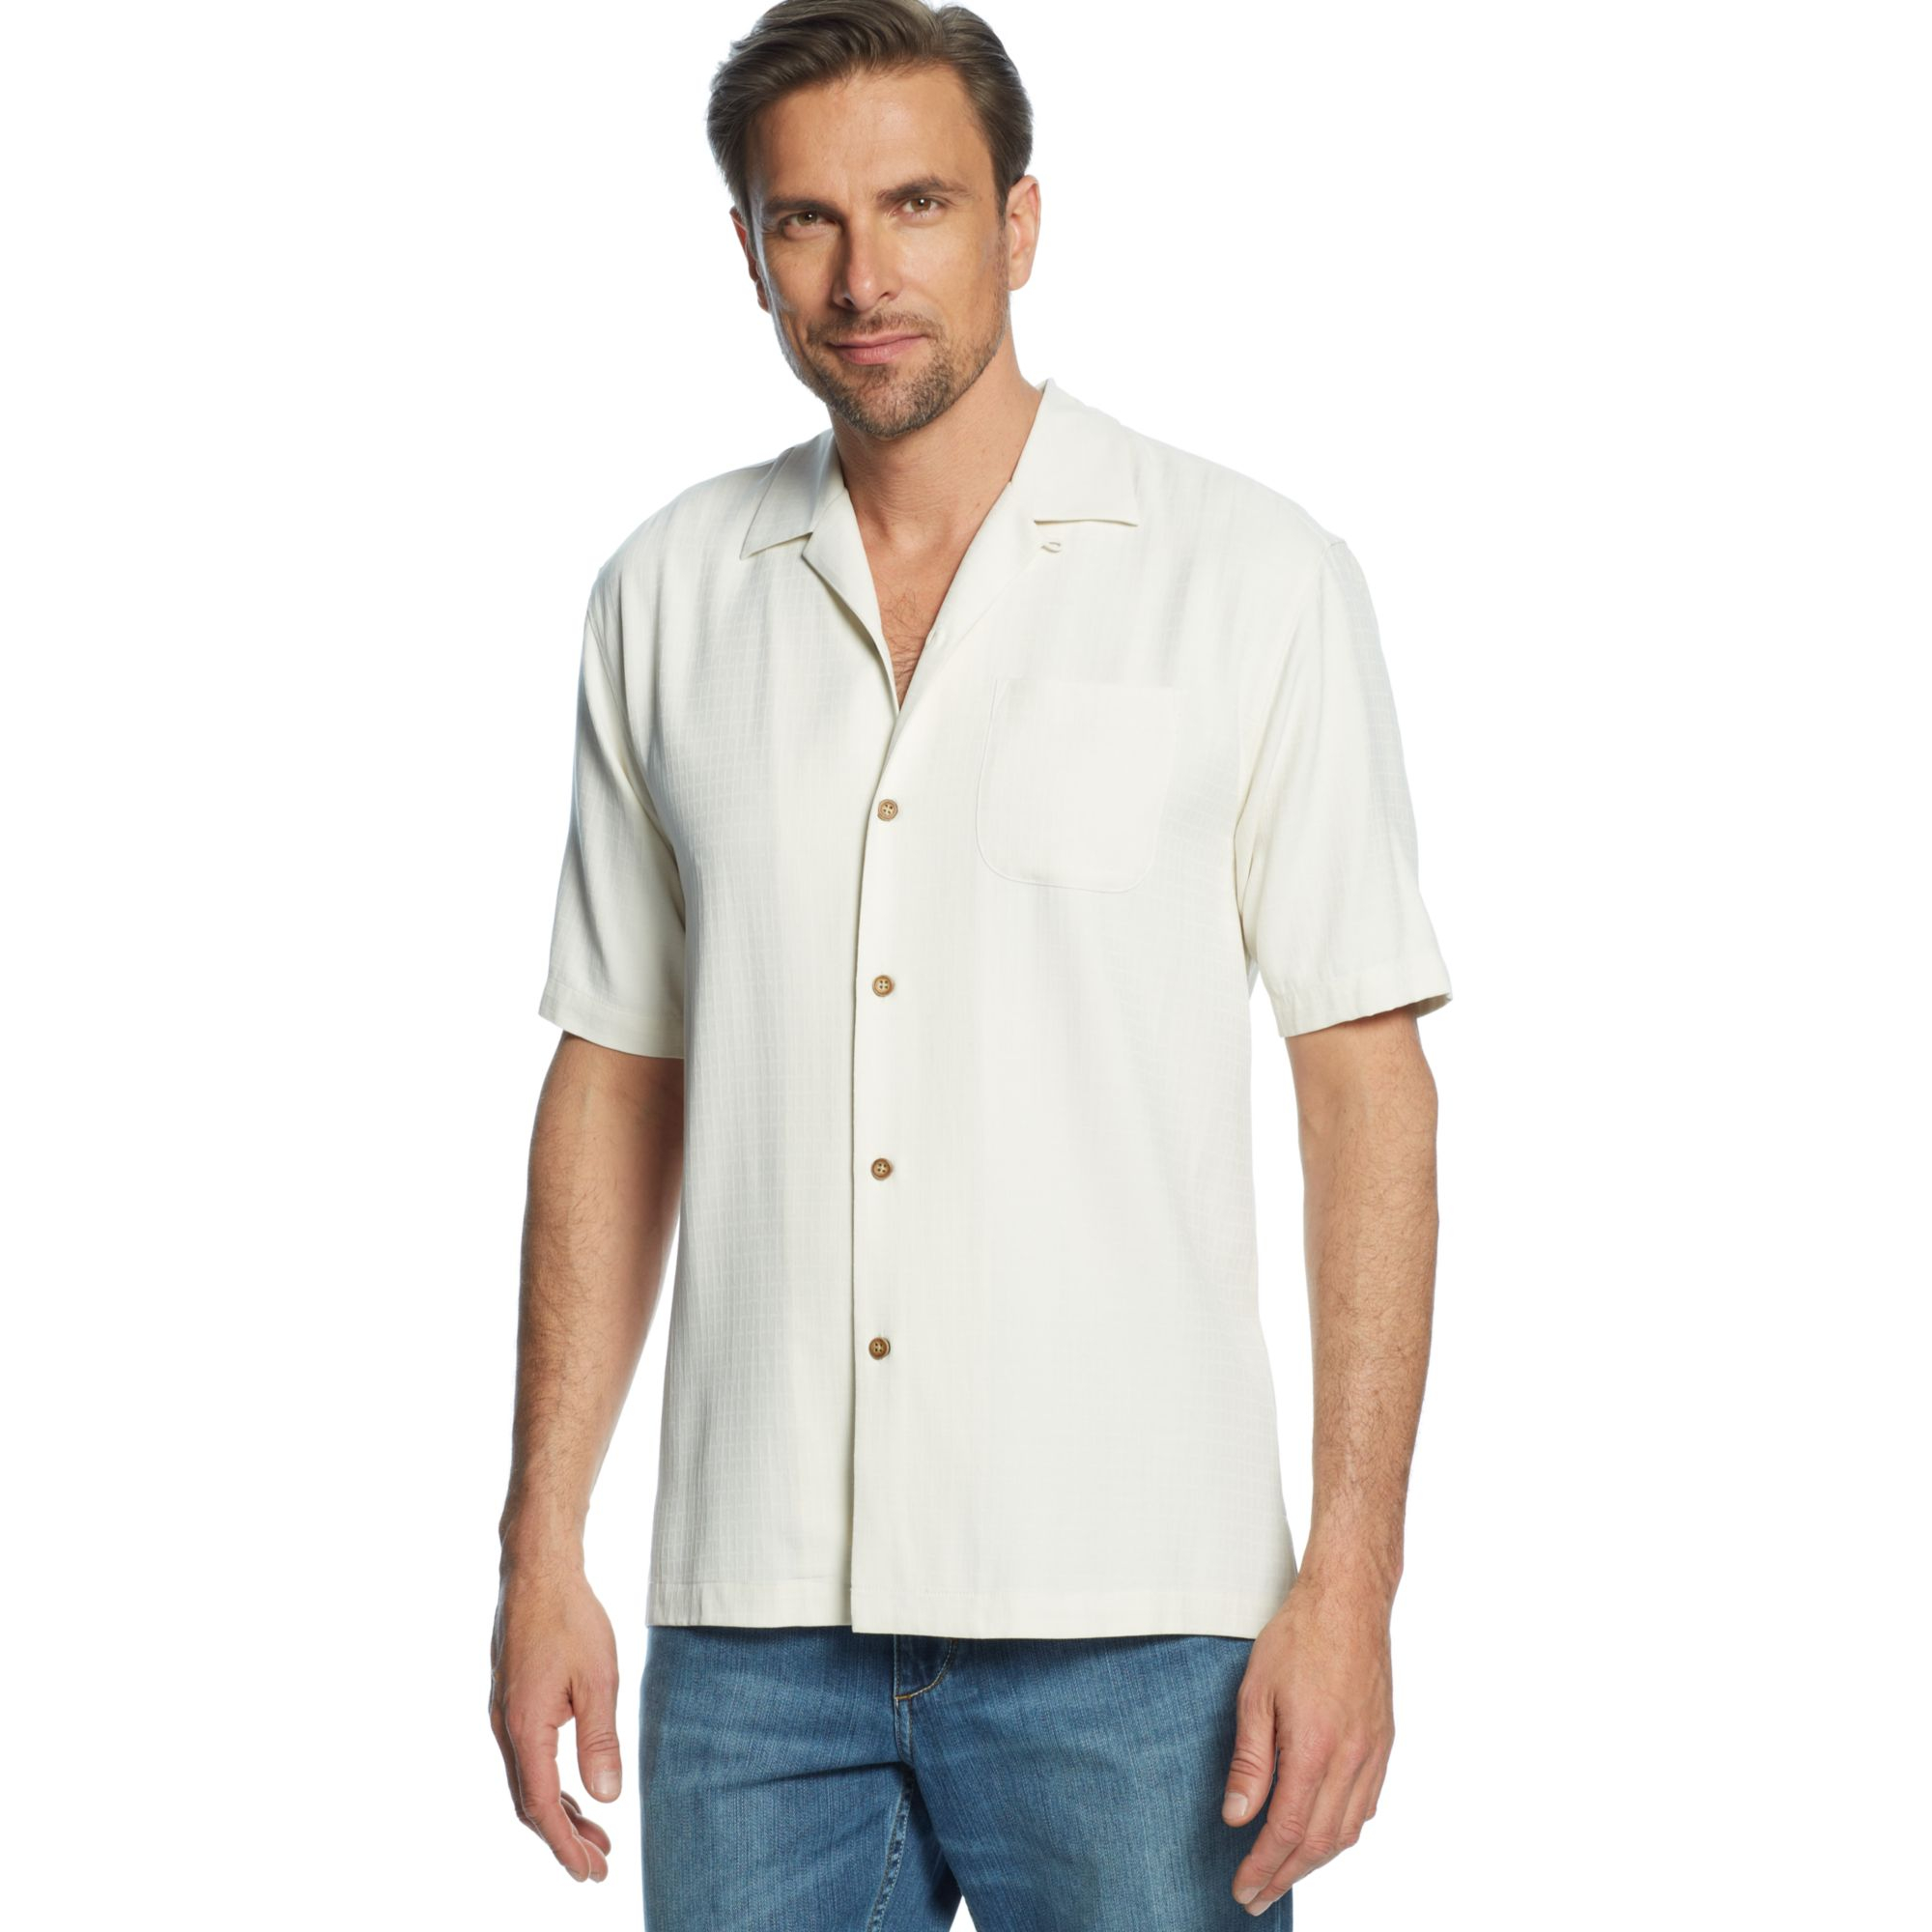 Tommy Bahama One Minute Workout Shirt in White for Men